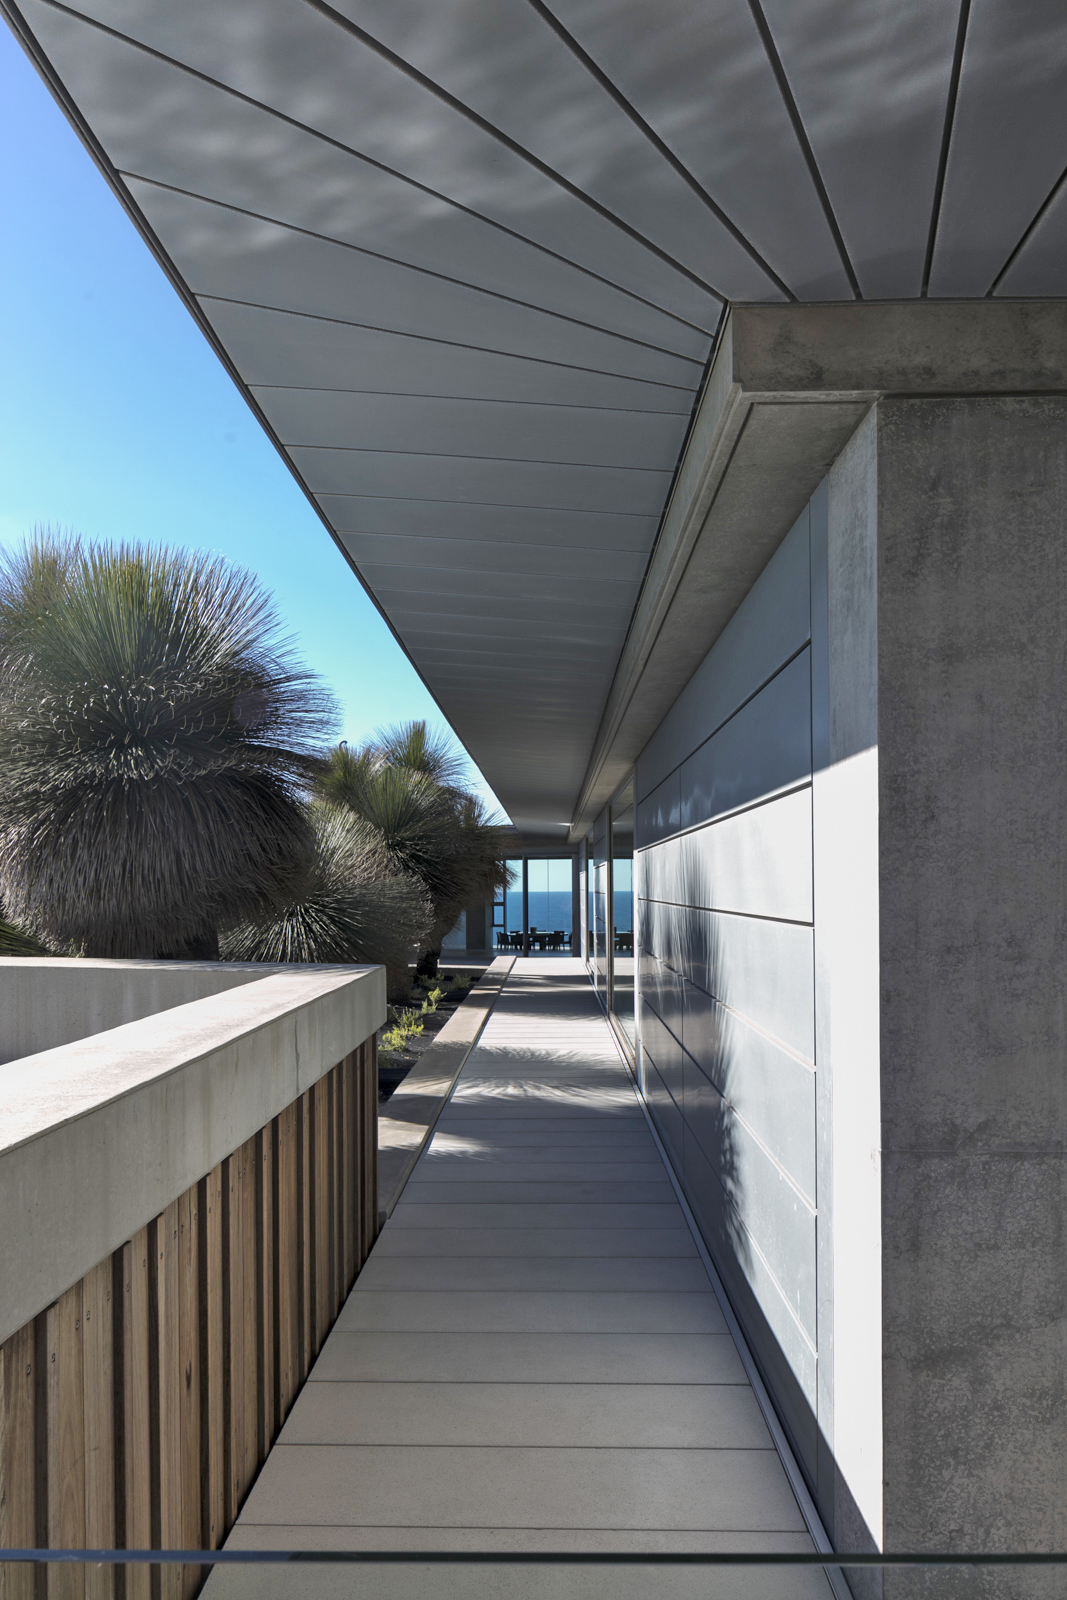 The Horizon House By Hills Thalis Local Australian Landscape Architecture & Residential Design Nsw, Australia Image 19